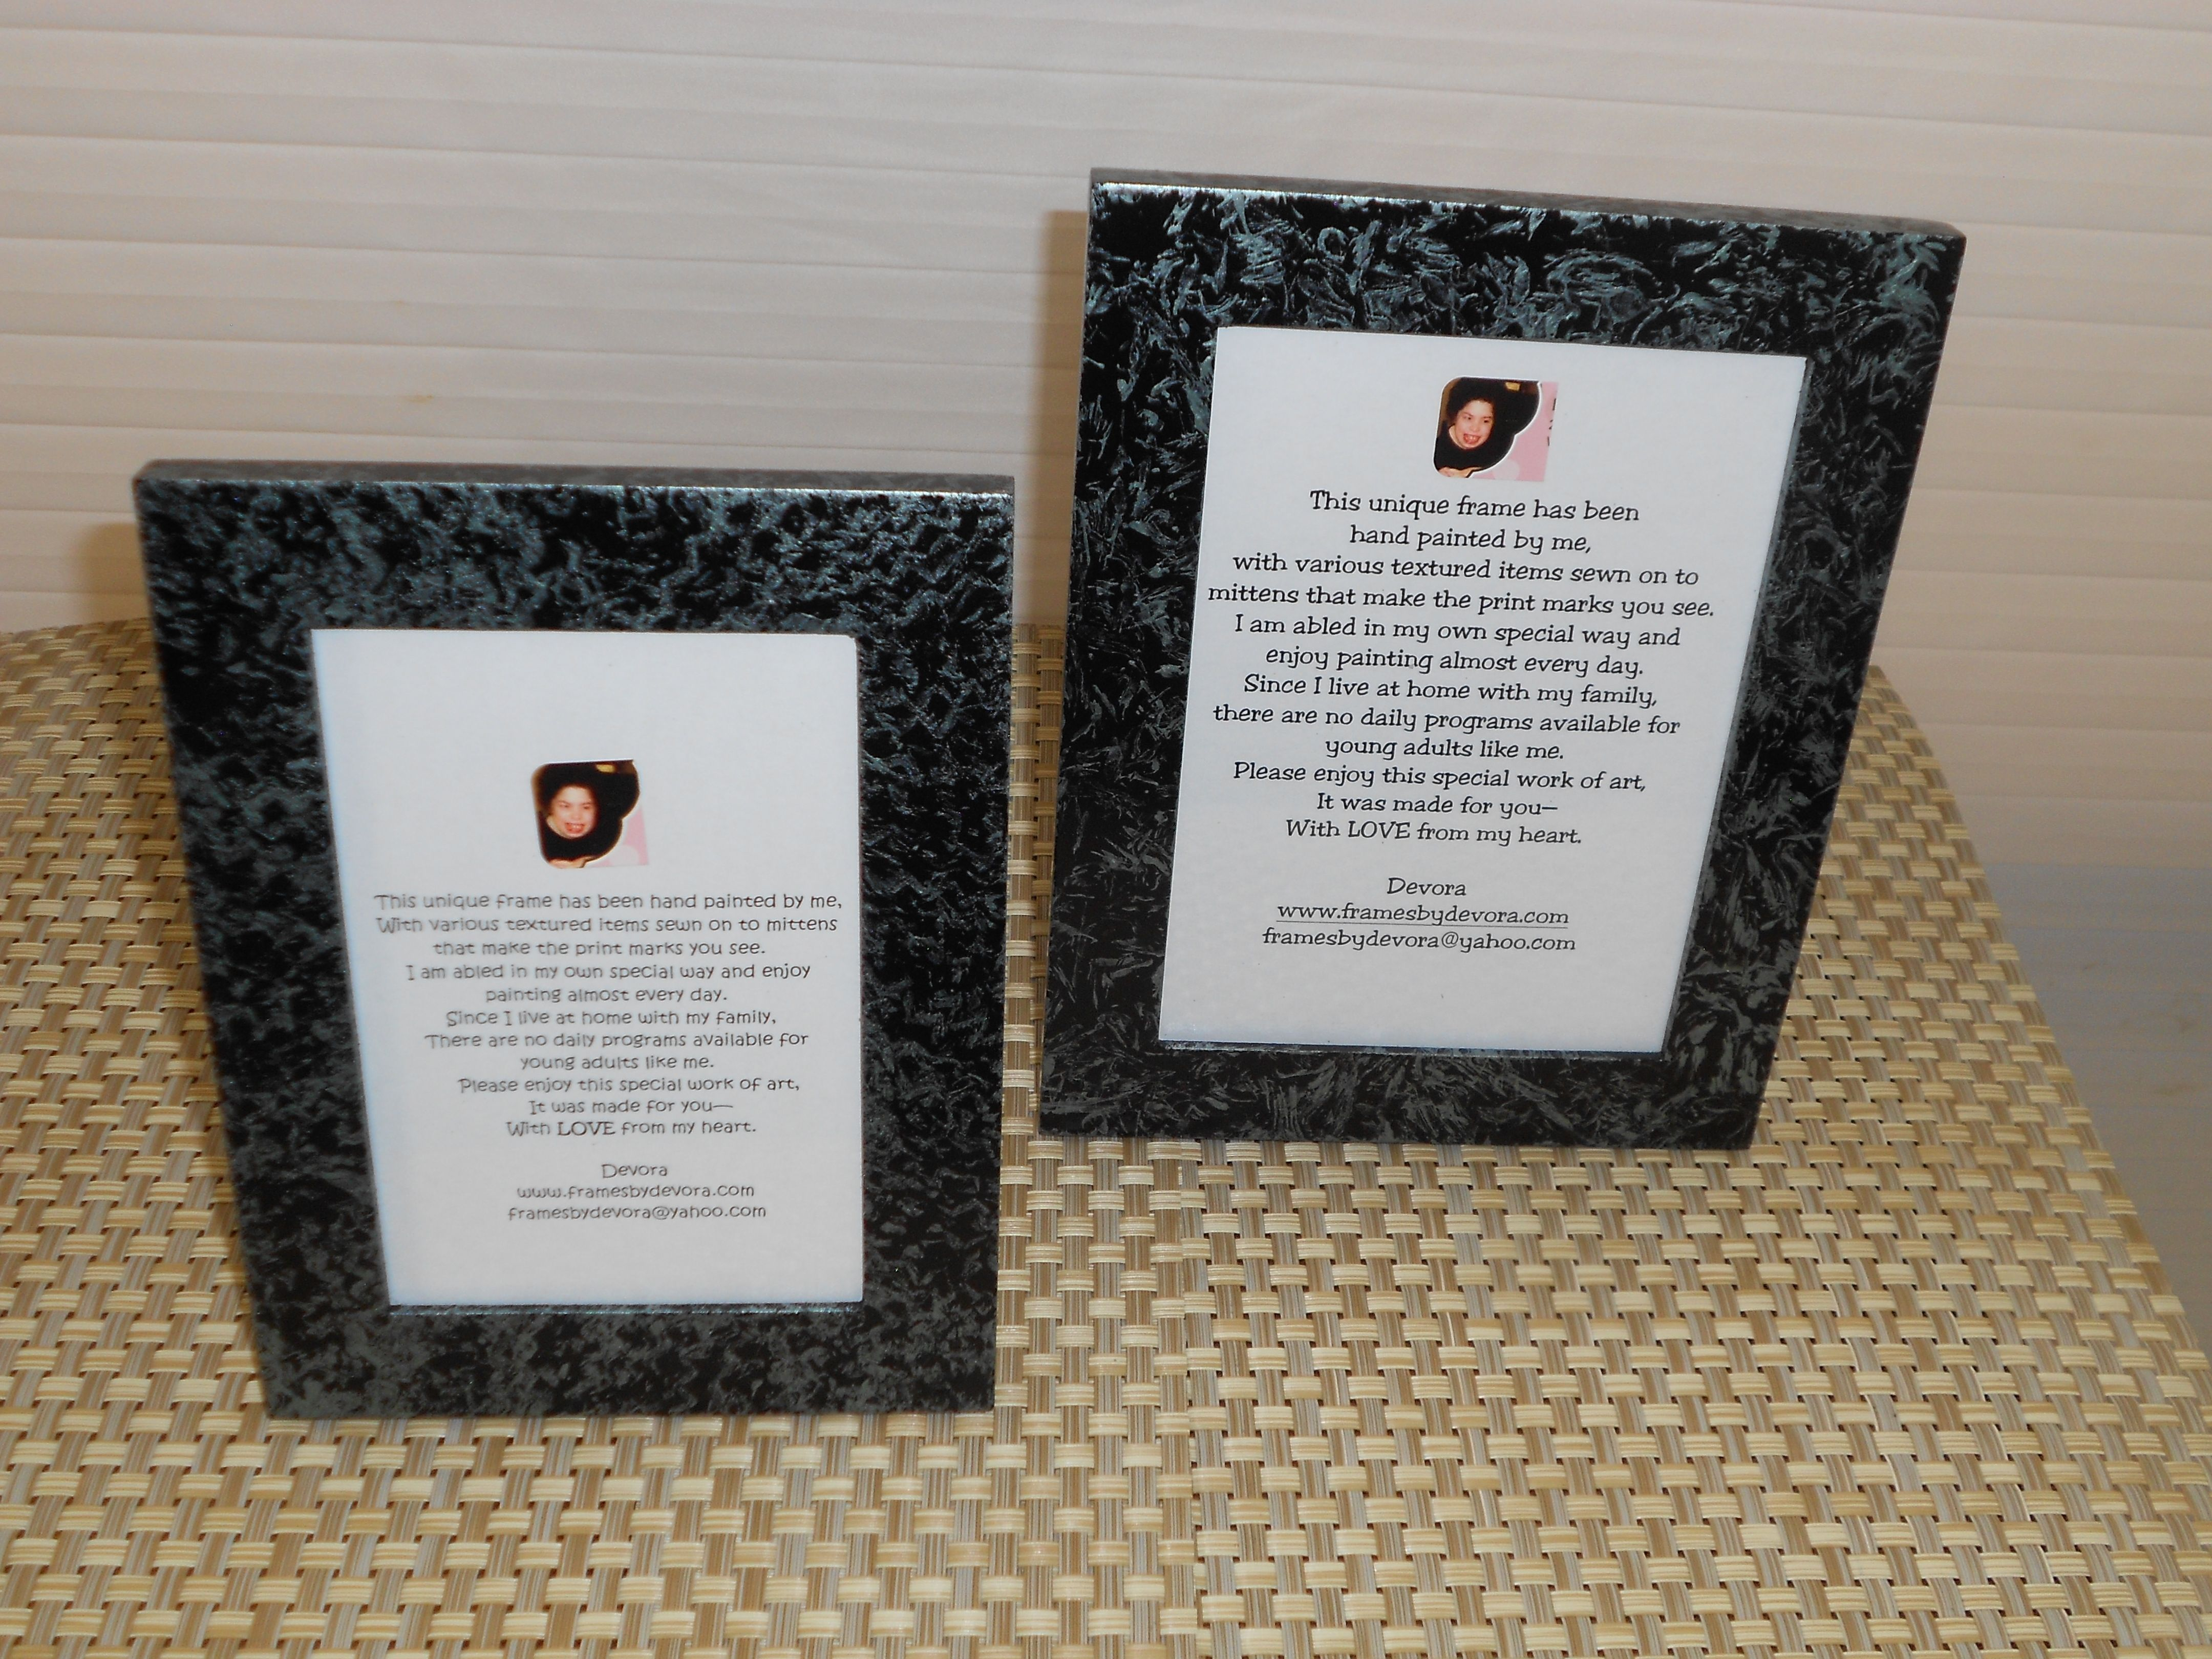 All frames are at Holiday Prices. Plain or family frames are $20 ...